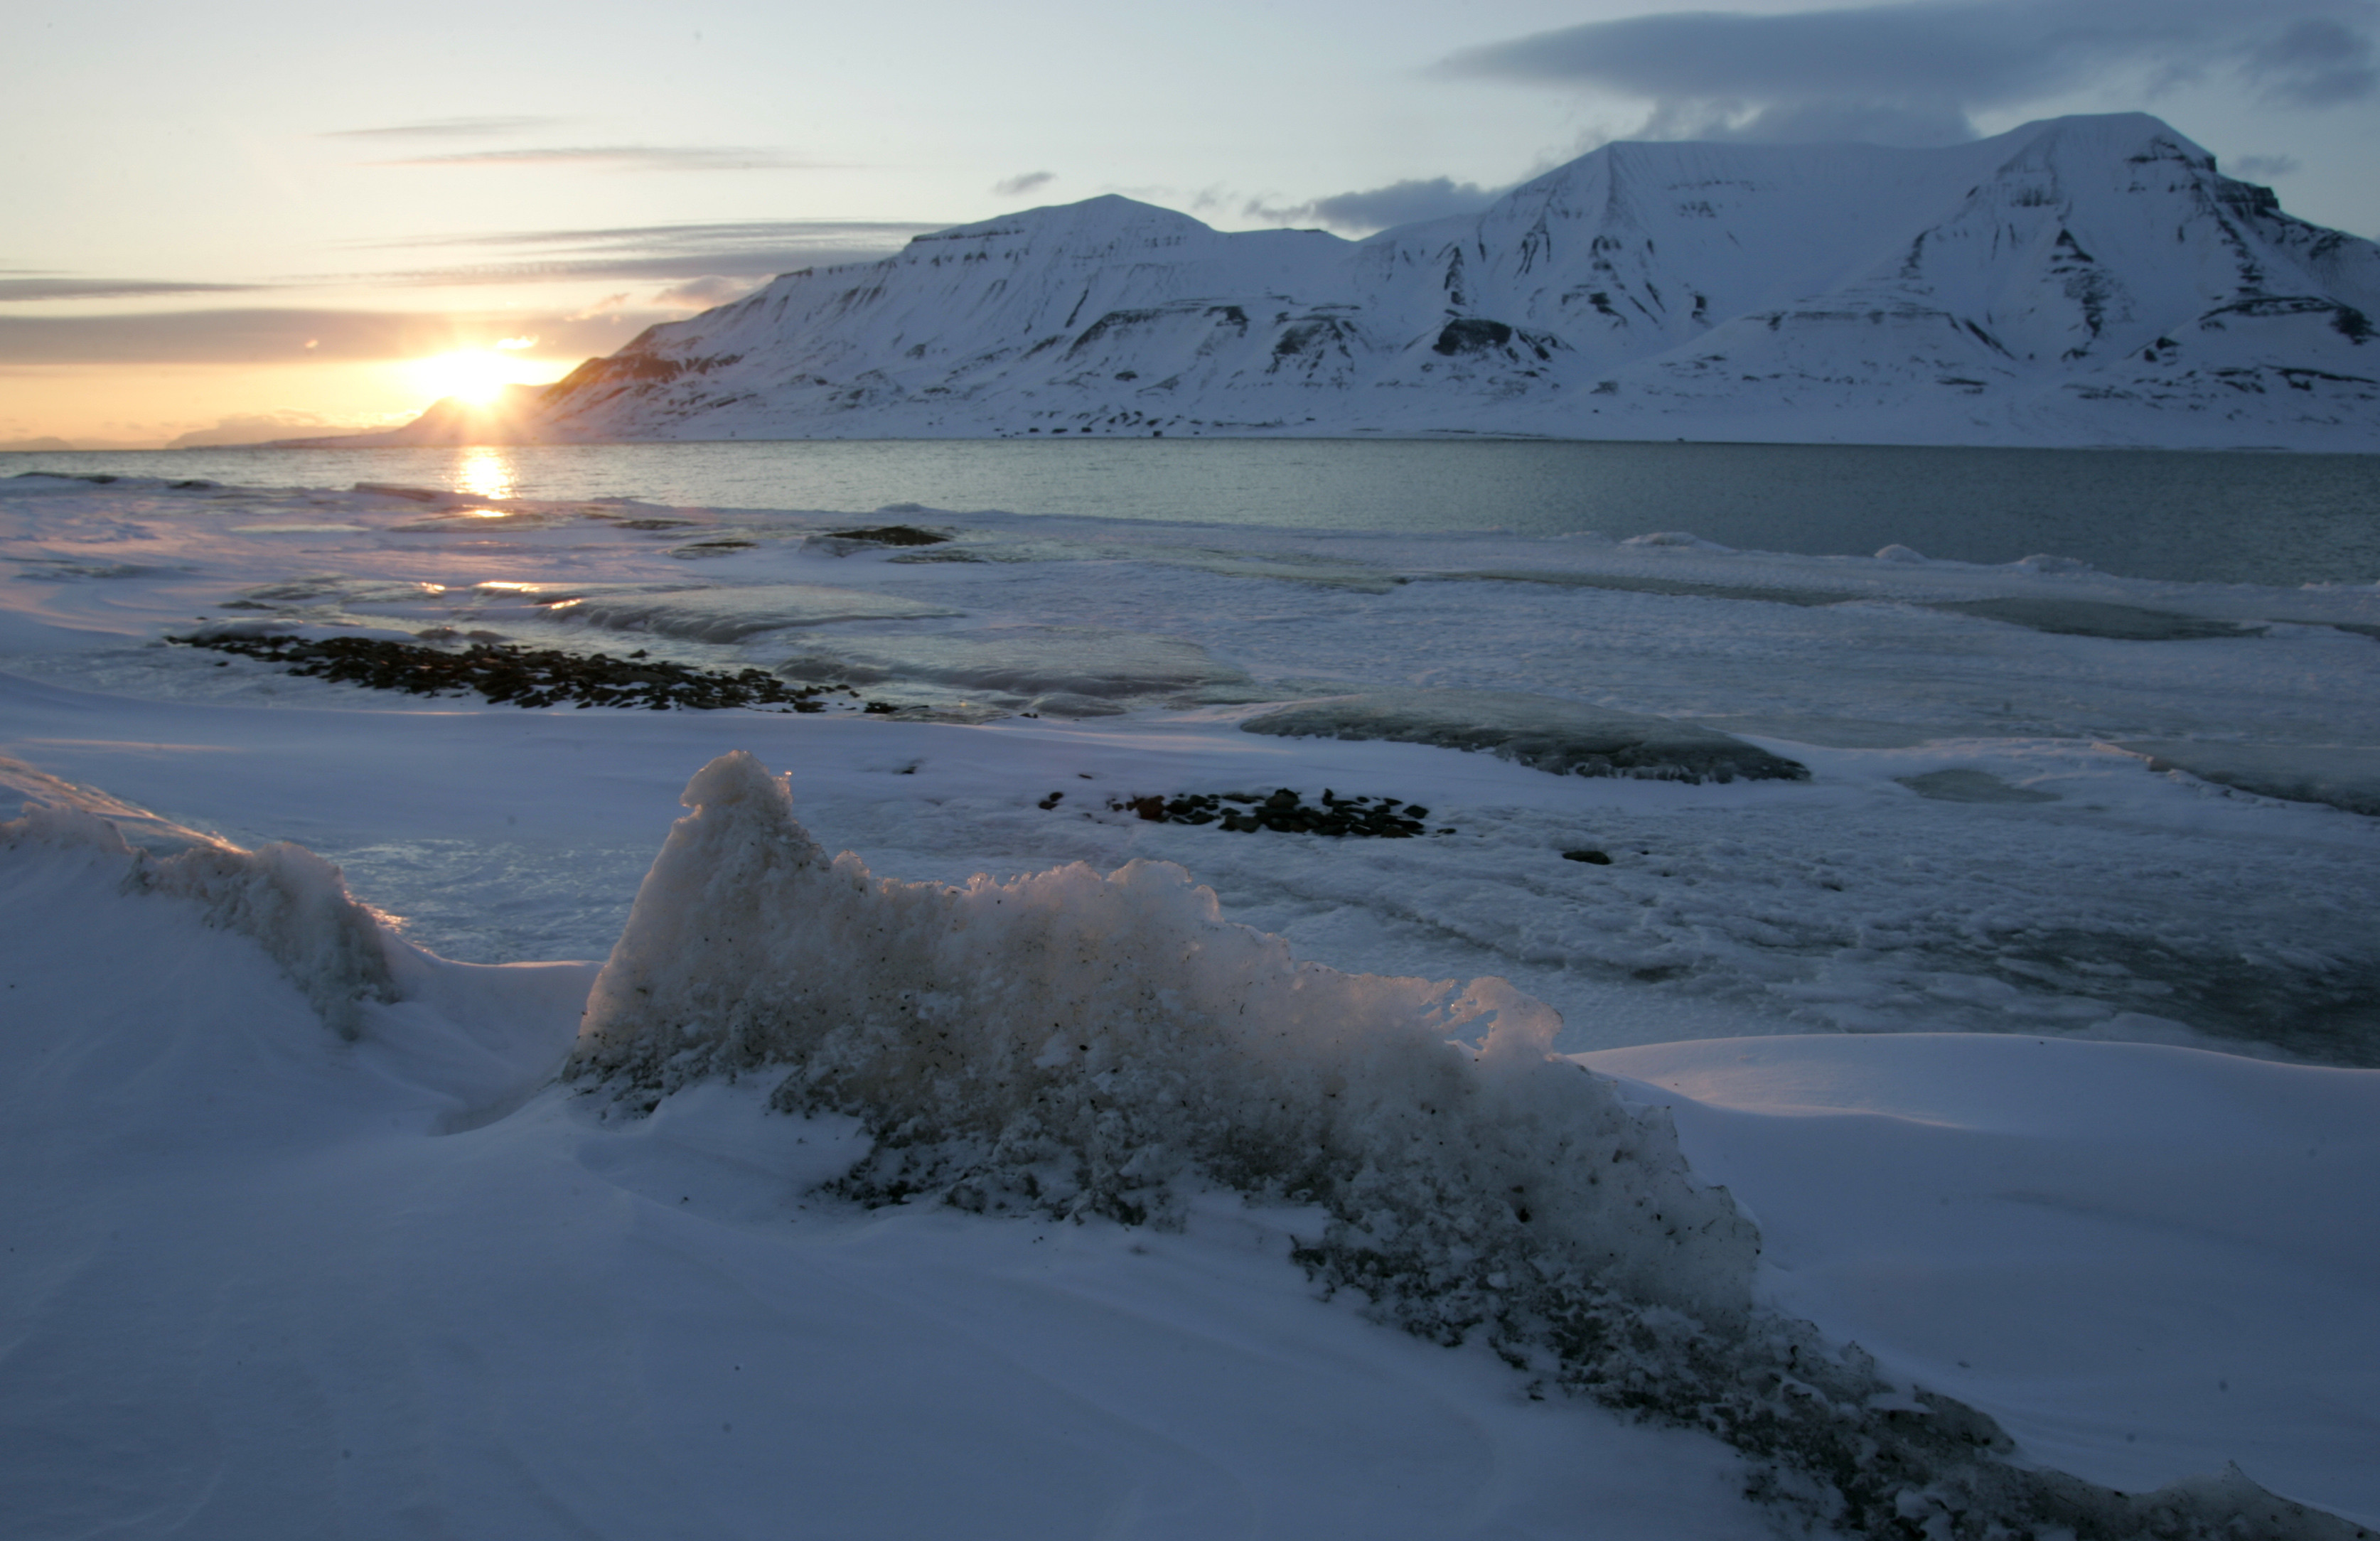 the sun shines low in the sky just after midnight over a frozen coastline near the Norwegian Arctic town of Longyearbyen